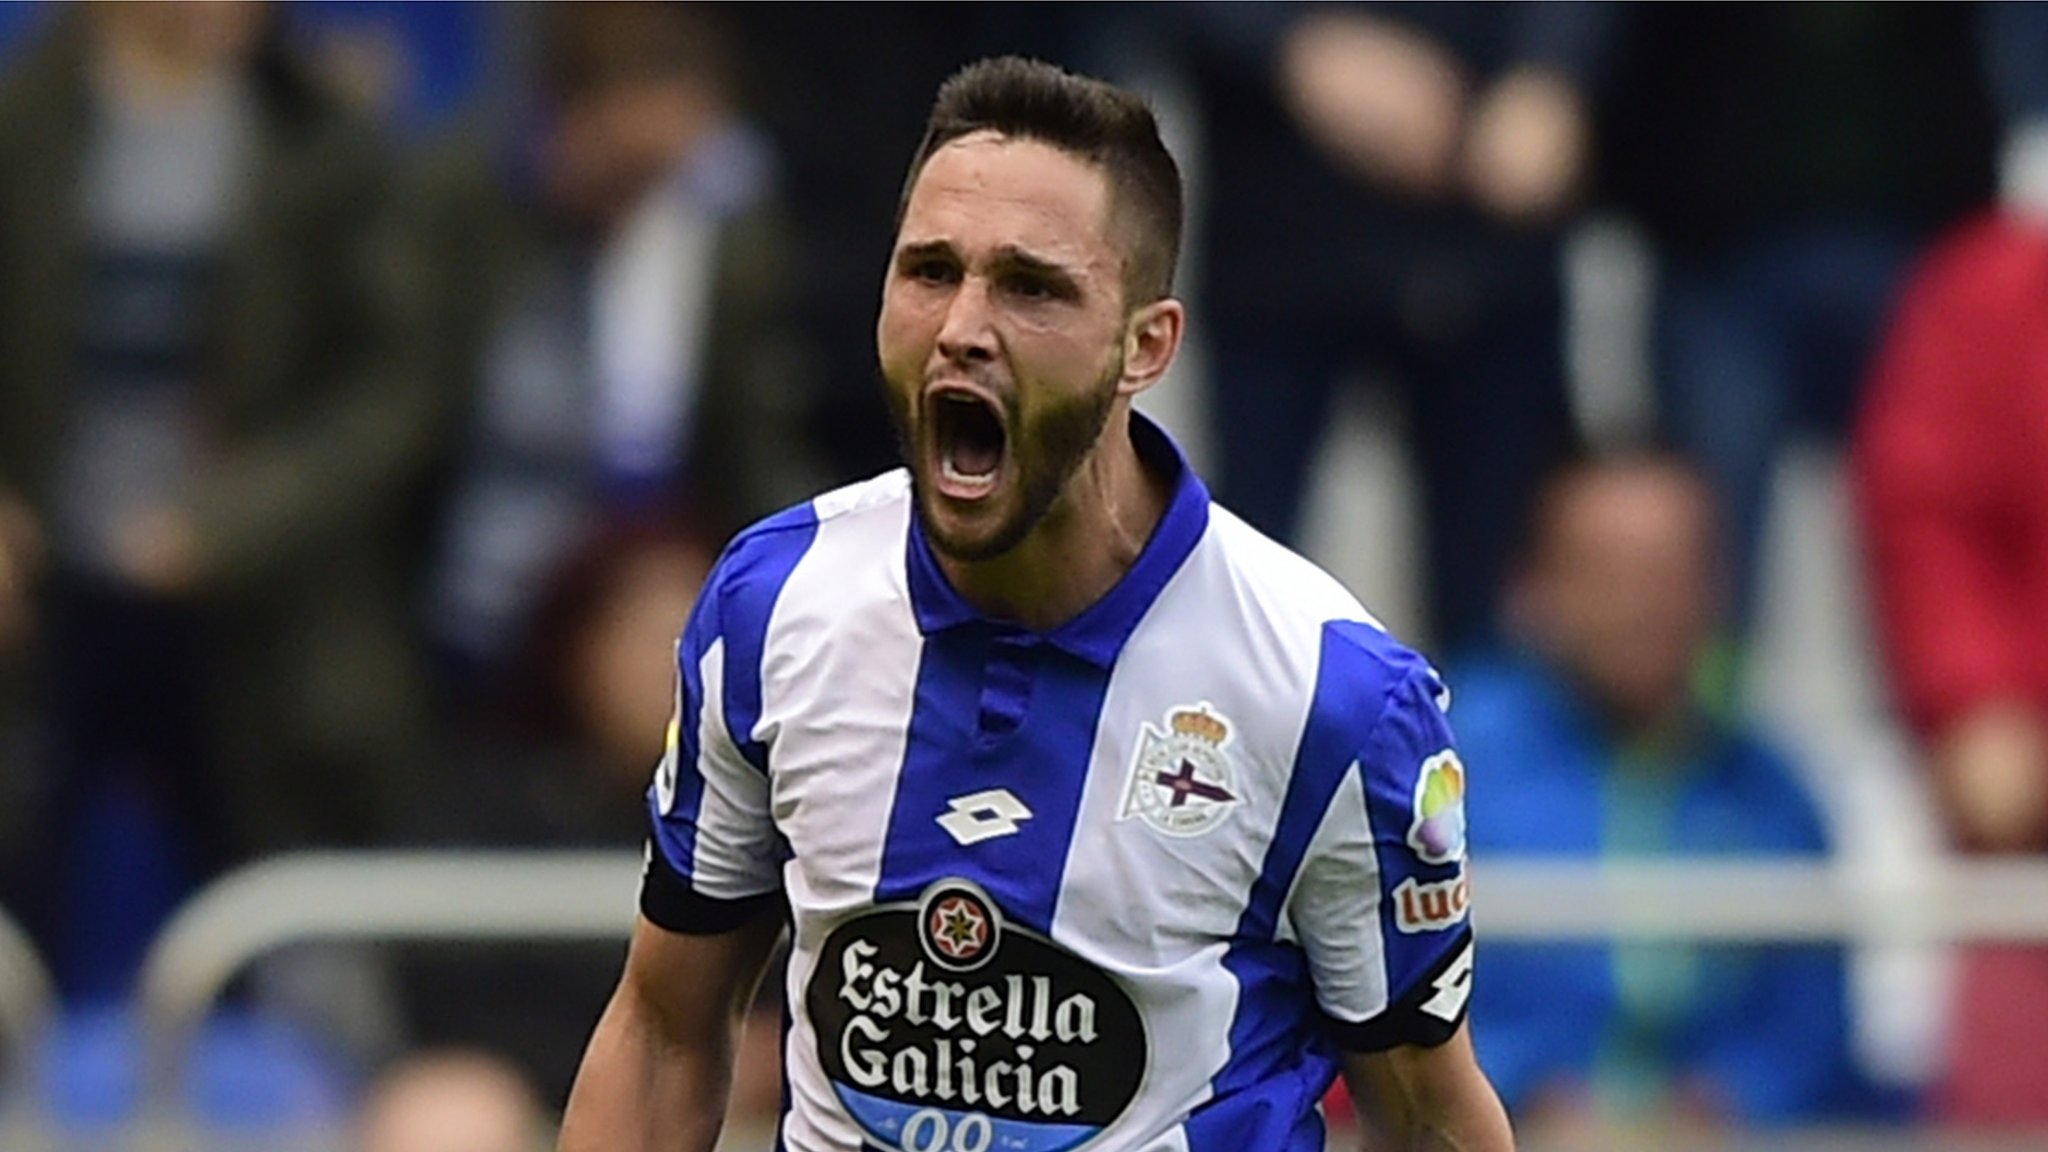 Brighton: Striker Florin Andone to join from Deportivo on five-year deal